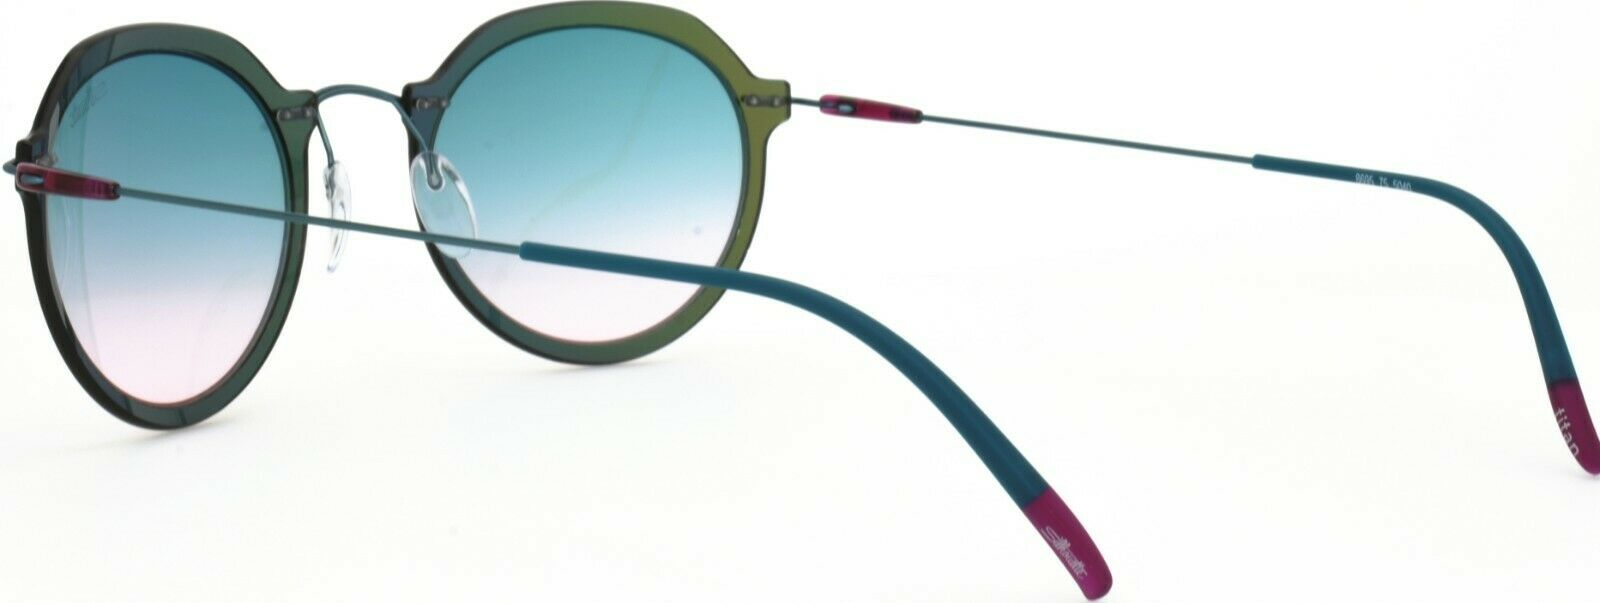 Silhouette Sunglasses Rx-able Eyeglasses Frame 8695 75 6560 Round  49-24-145